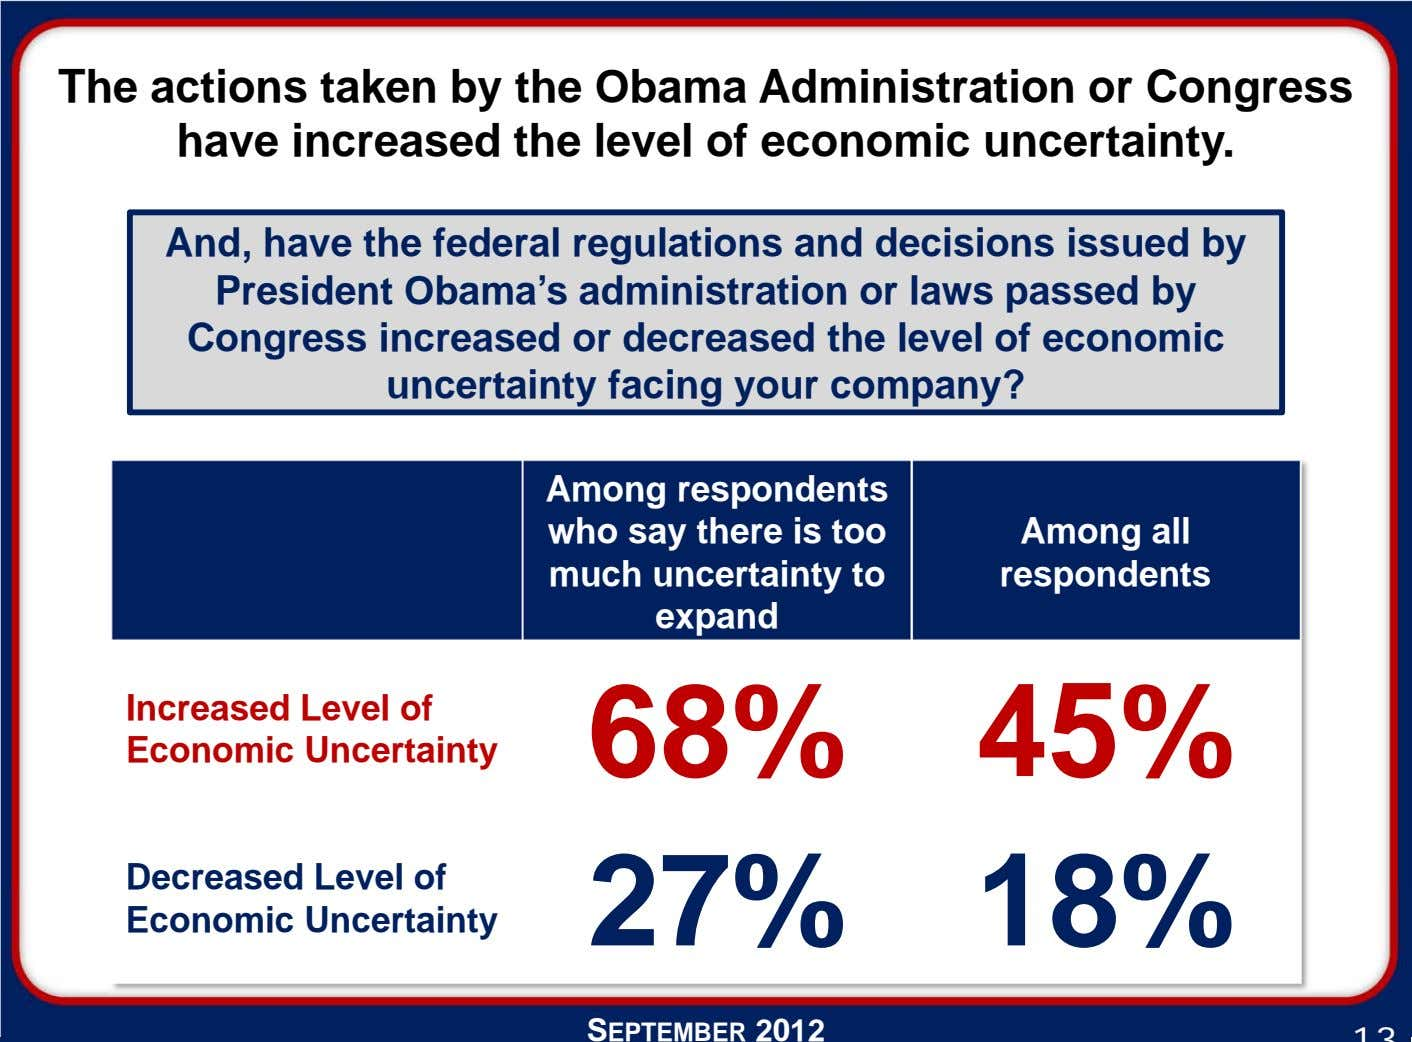 The actions taken by the Obama Administration or Congress have increased the level of economic